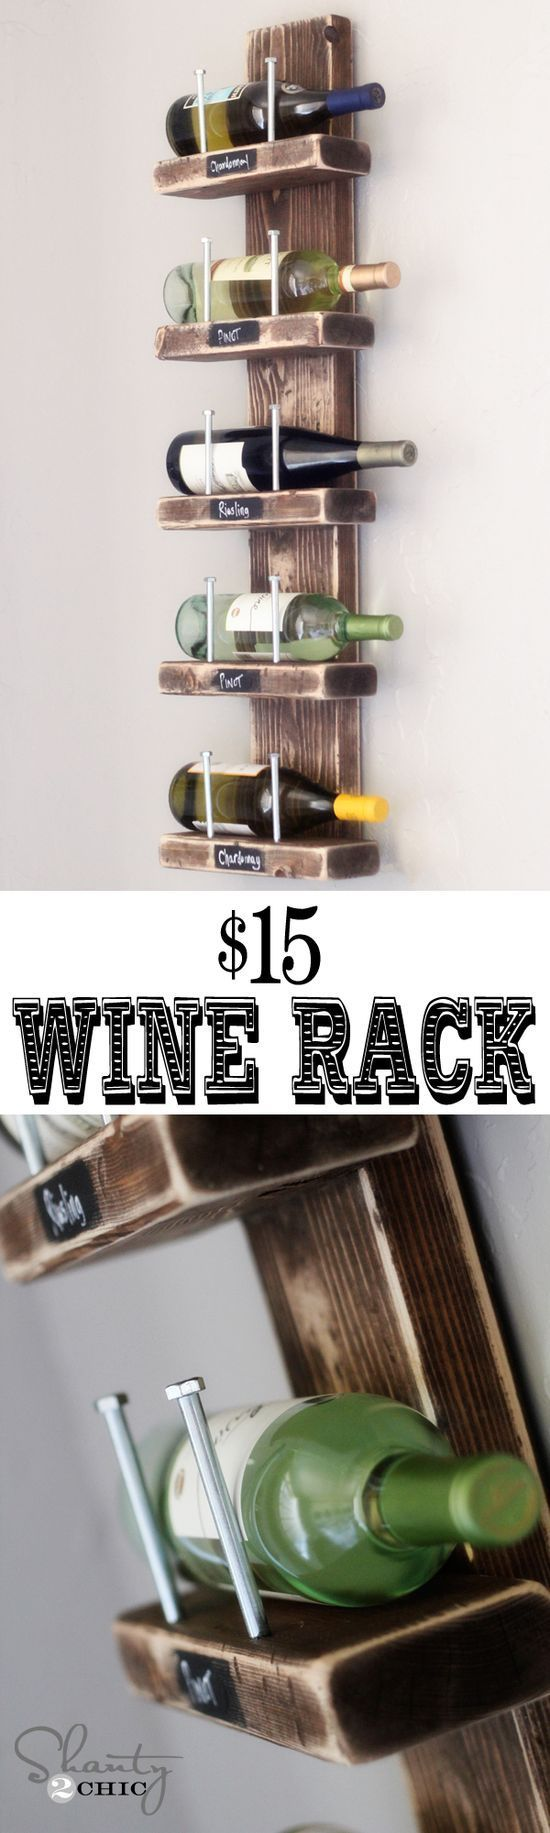 Frugal and creative . . . really like the chalkboard paint on the front of each. For the basement bar? Love this diy wine rack!